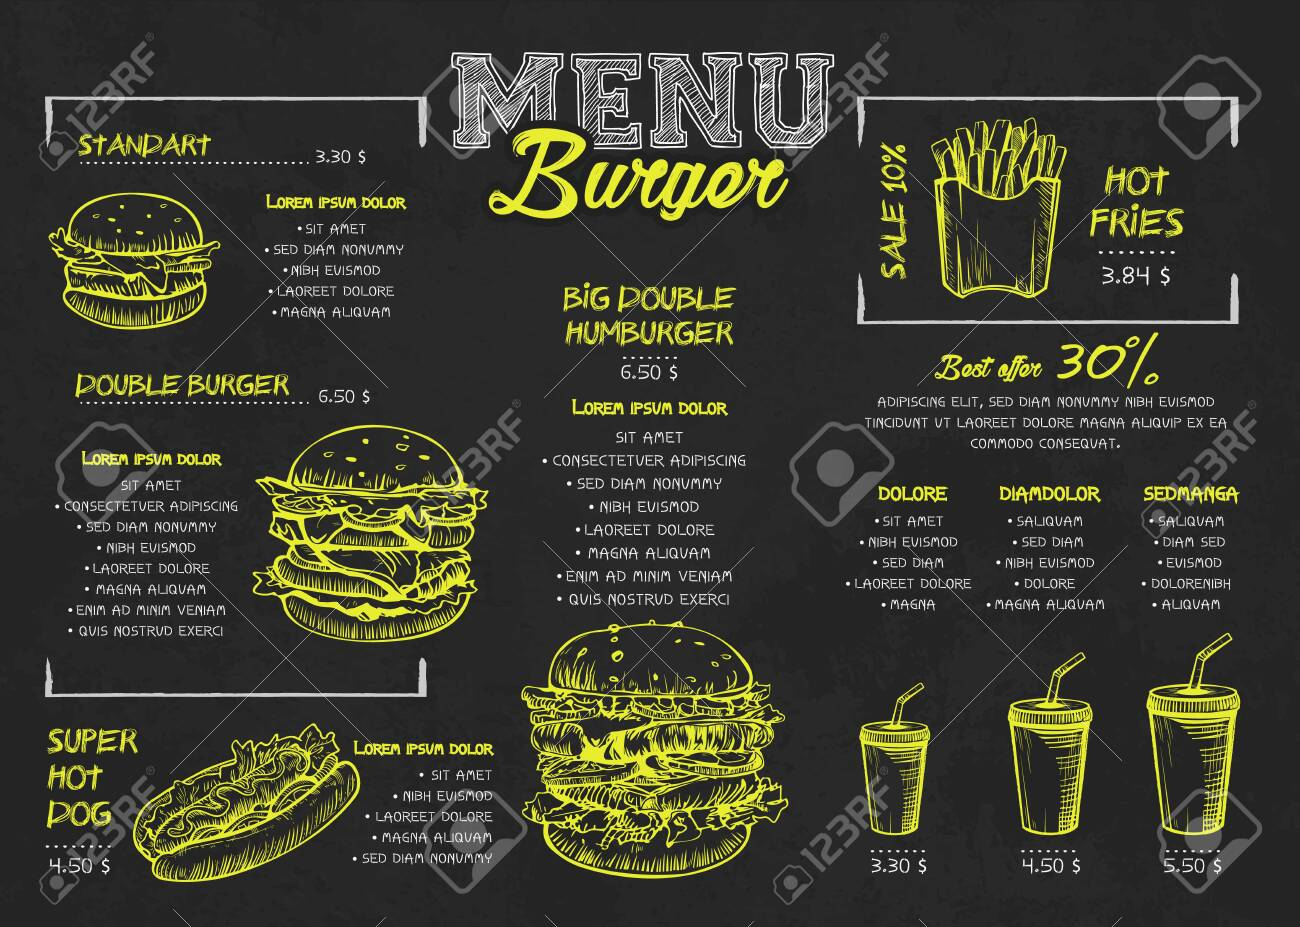 Burger menu poster design on the chalkboard elements. Fast food menu skech style. Can be used for layout, banner, web design, brochure template. Vector illustration. - 120842941